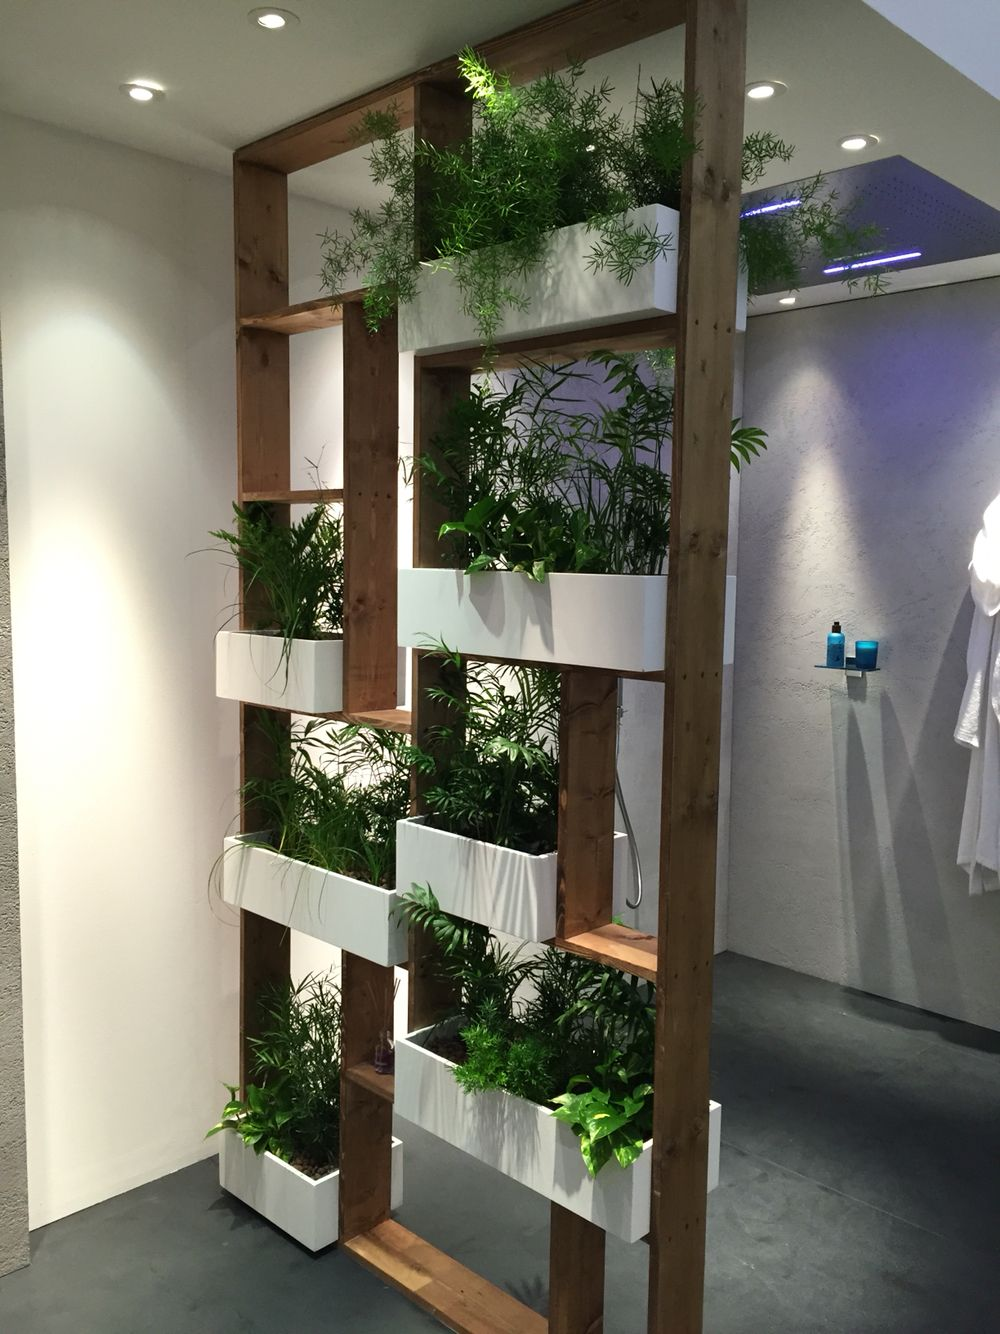 Giulini G.  A lot of Italian companies incorporated shelving for plants and growing systems in kitchens and baths. #eetkamer